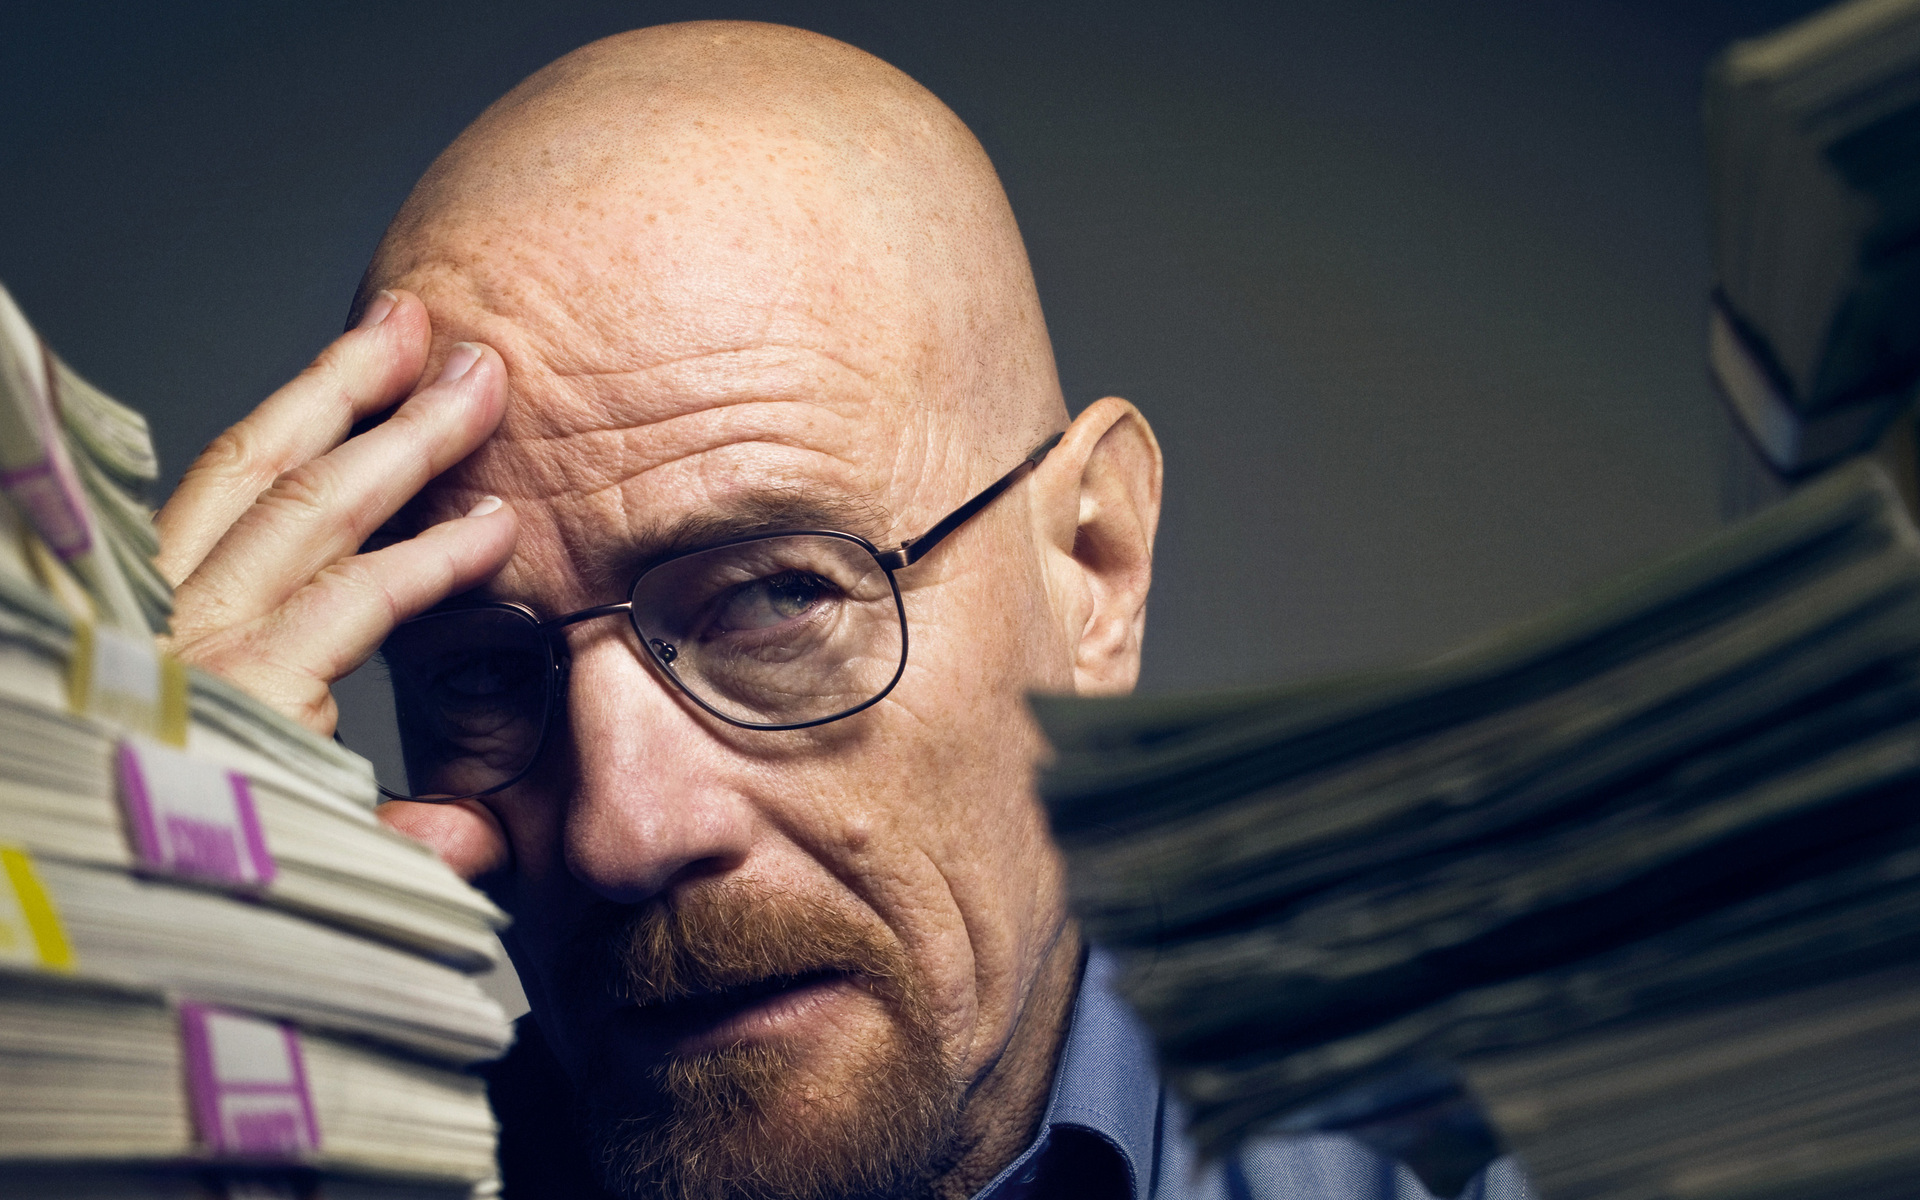 1920x1200 Walter White In Breaking Bad 1080p Resolution Hd 4k